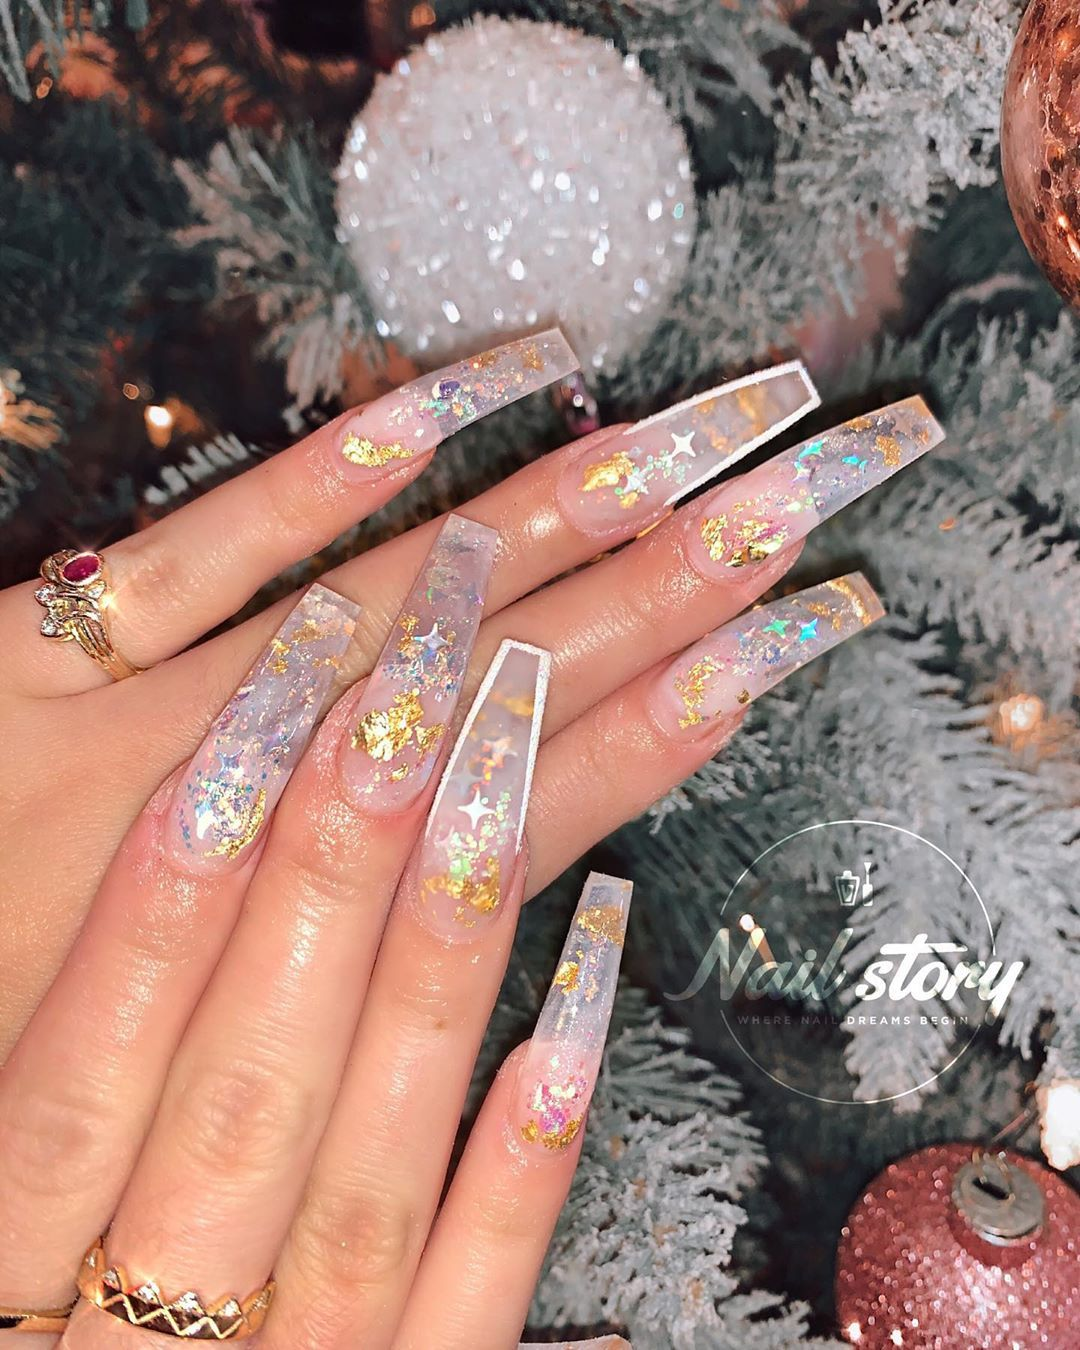 Nail Story Of Chino Hills On Instagram Shine On Clear Milky Nails Encaps Gold Acrylic Nails Coffin Nails Designs Clear Nail Designs